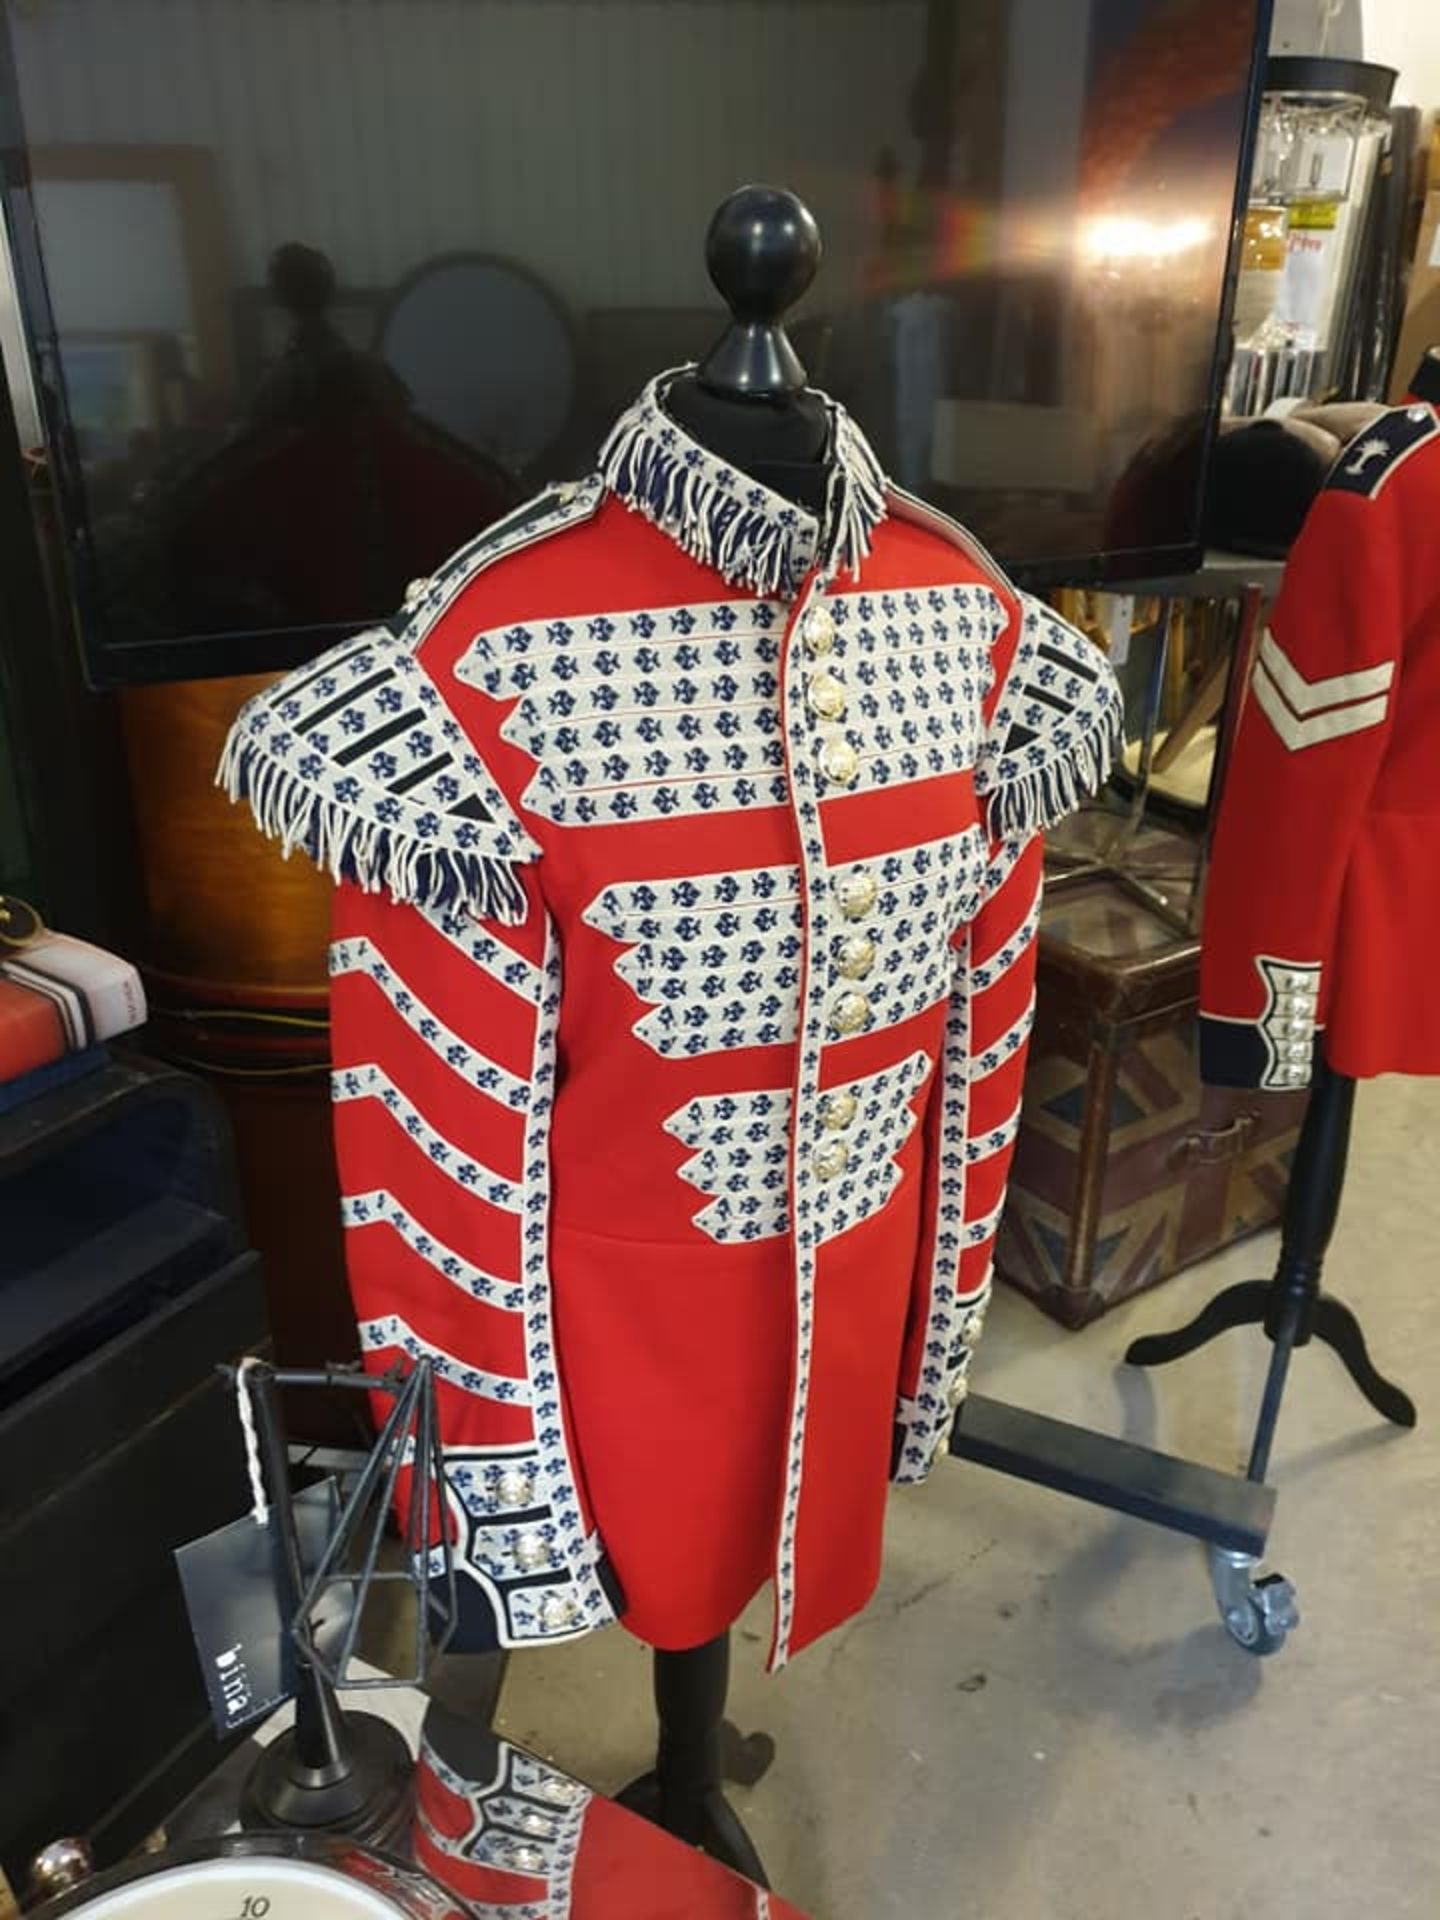 Lot 47 - Genuine Scots Guards Drummer Tunic wool blend The Scots Guards is one of the Foot Guards regiments